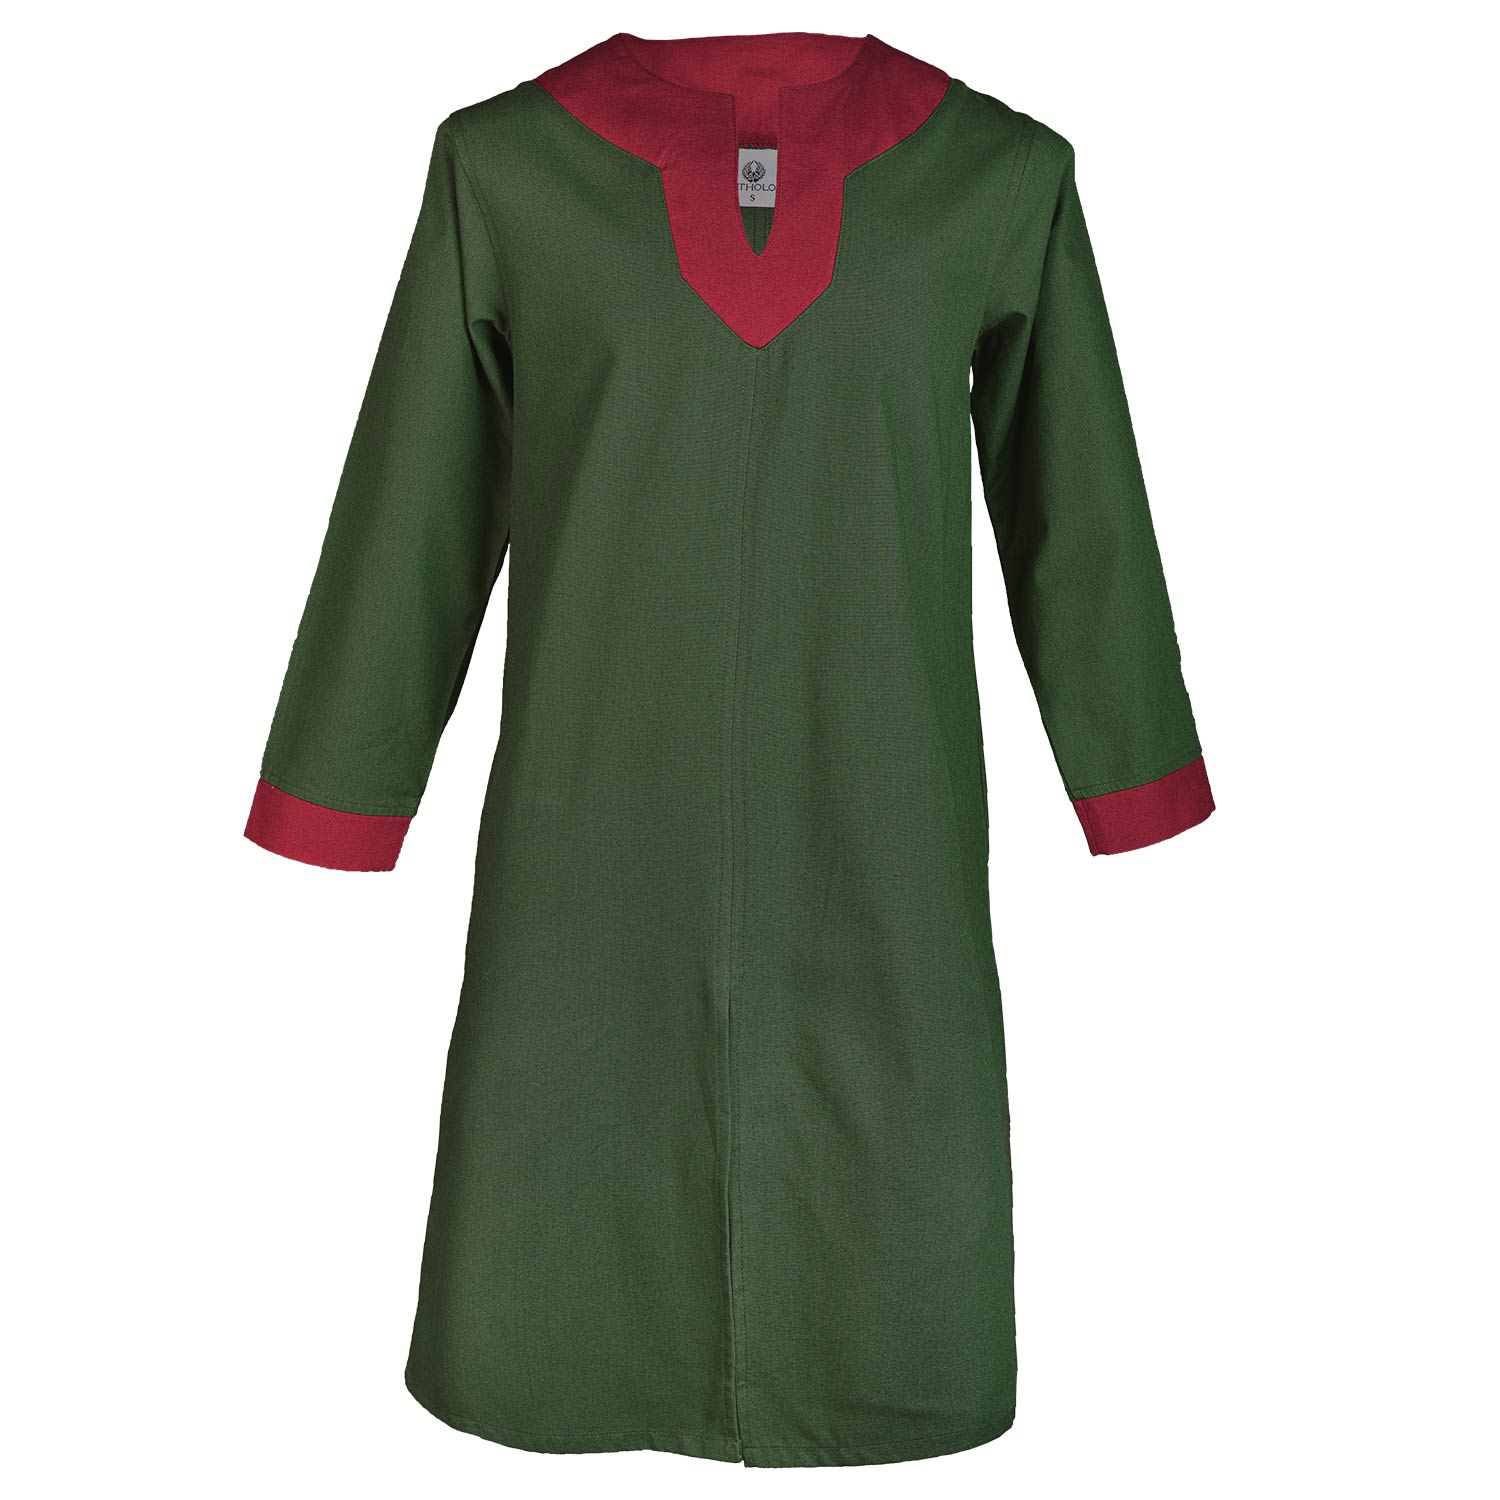 Wilfred tunic